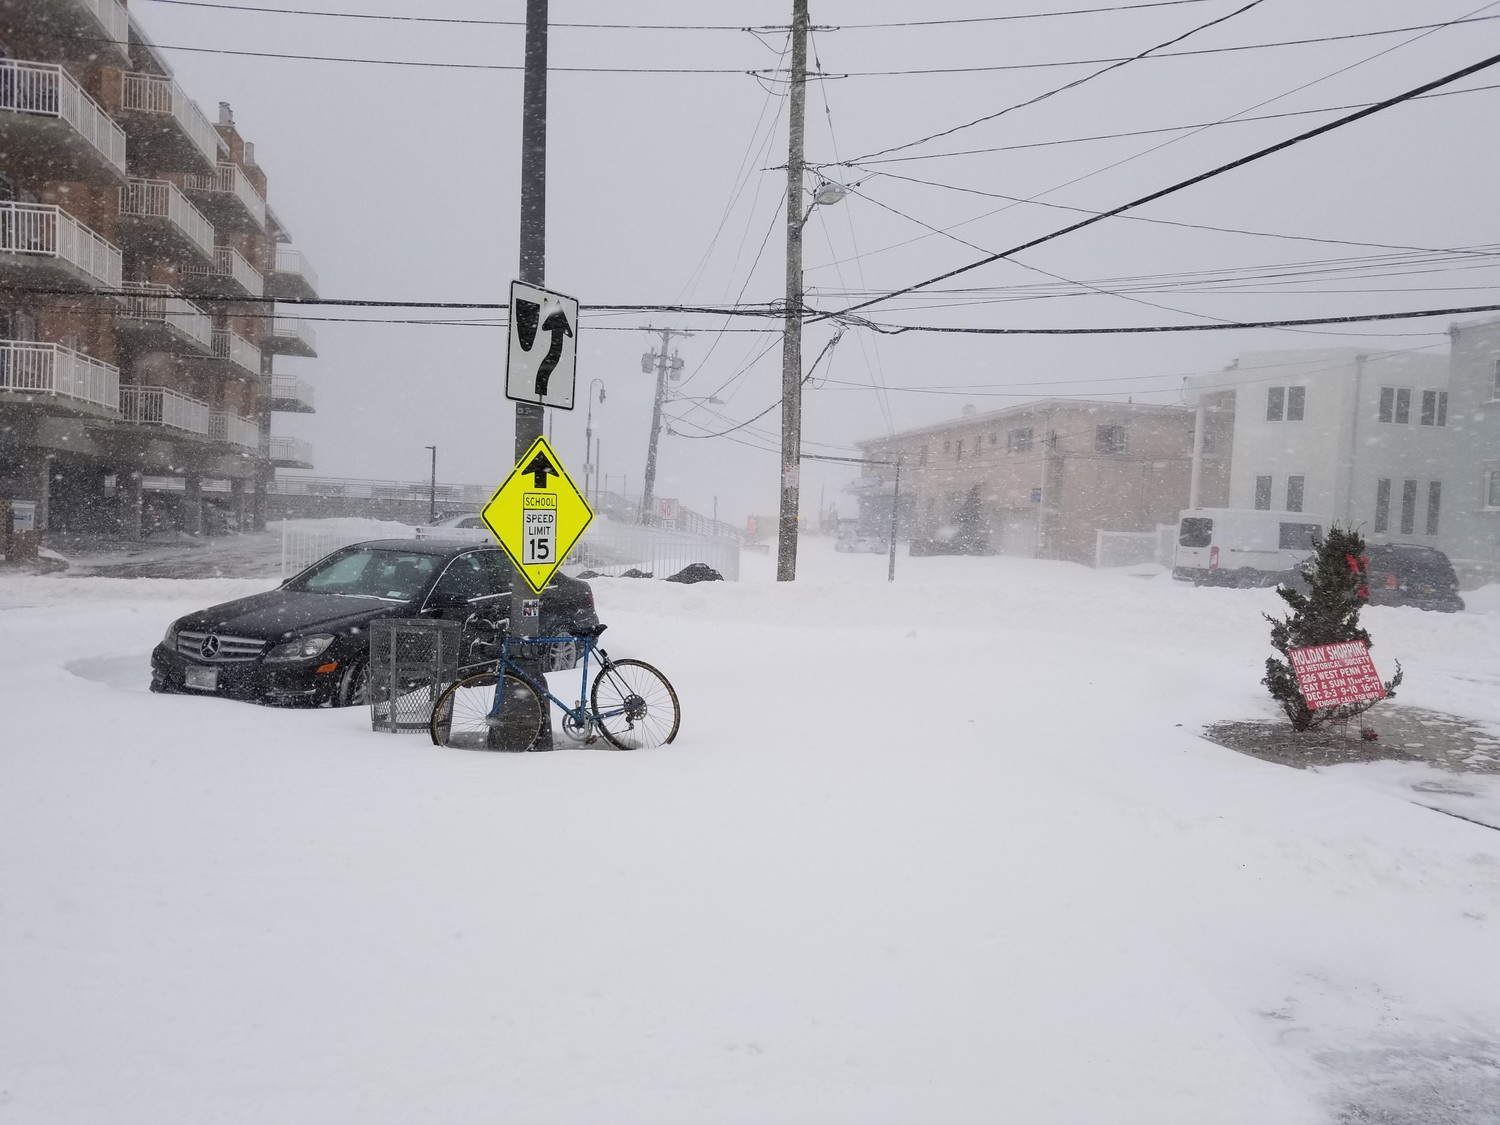 Long Beach was hit with a powerful snowstorm on Thursday. Parts of the barrier island saw up to 14 inches of snow and residents said they saw drifts up to five feet tall.